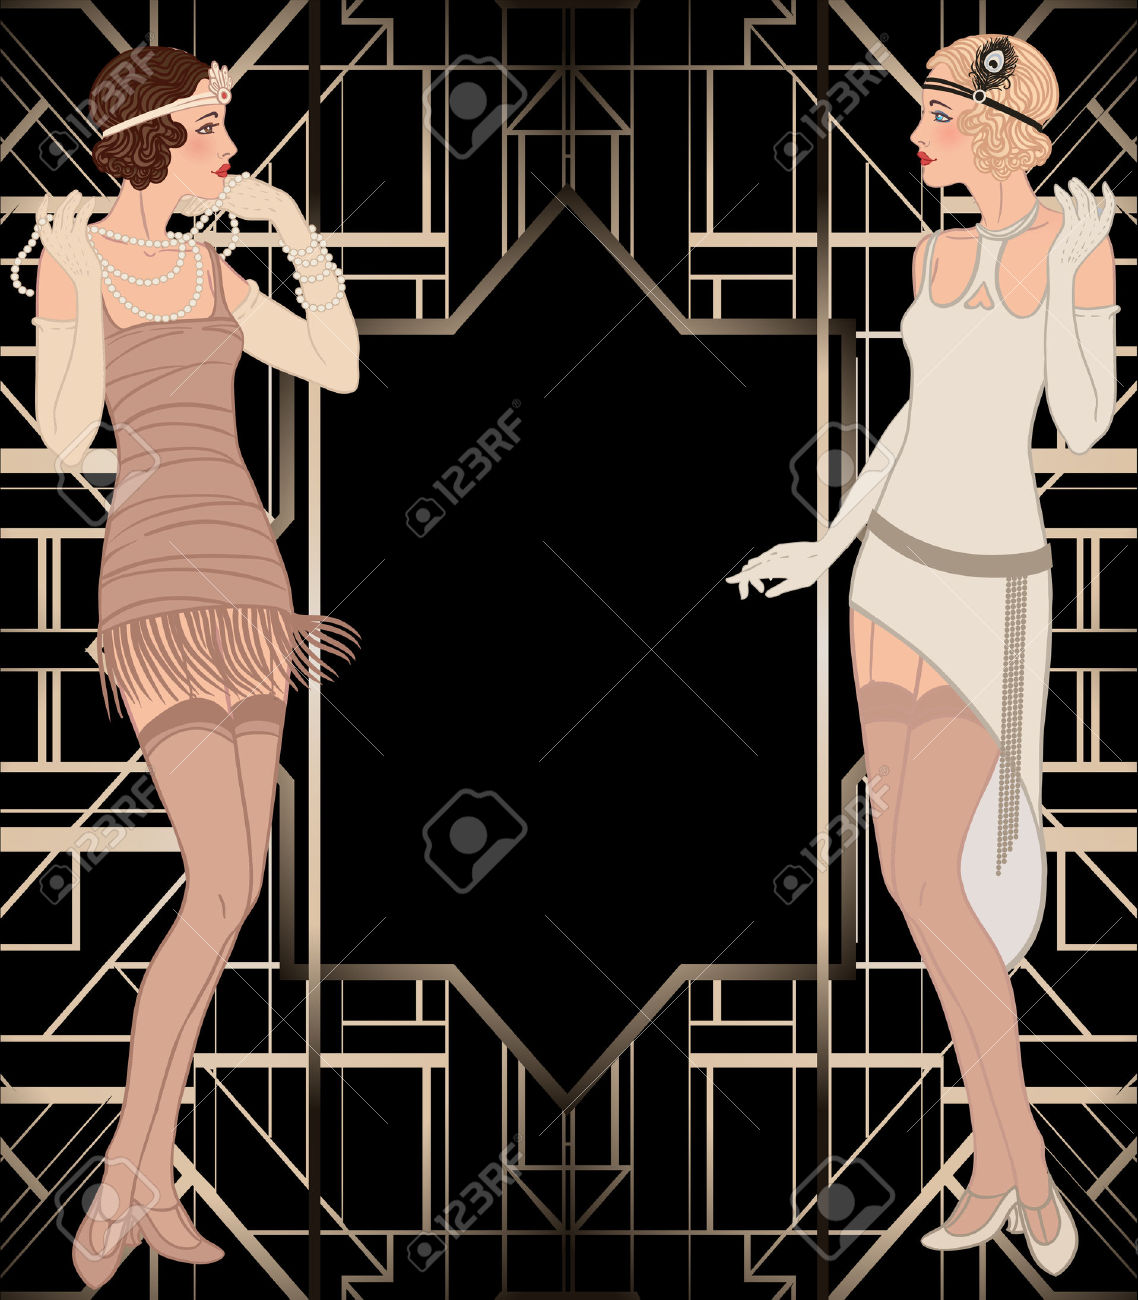 flapper silhouette pattern clipart - Clipground